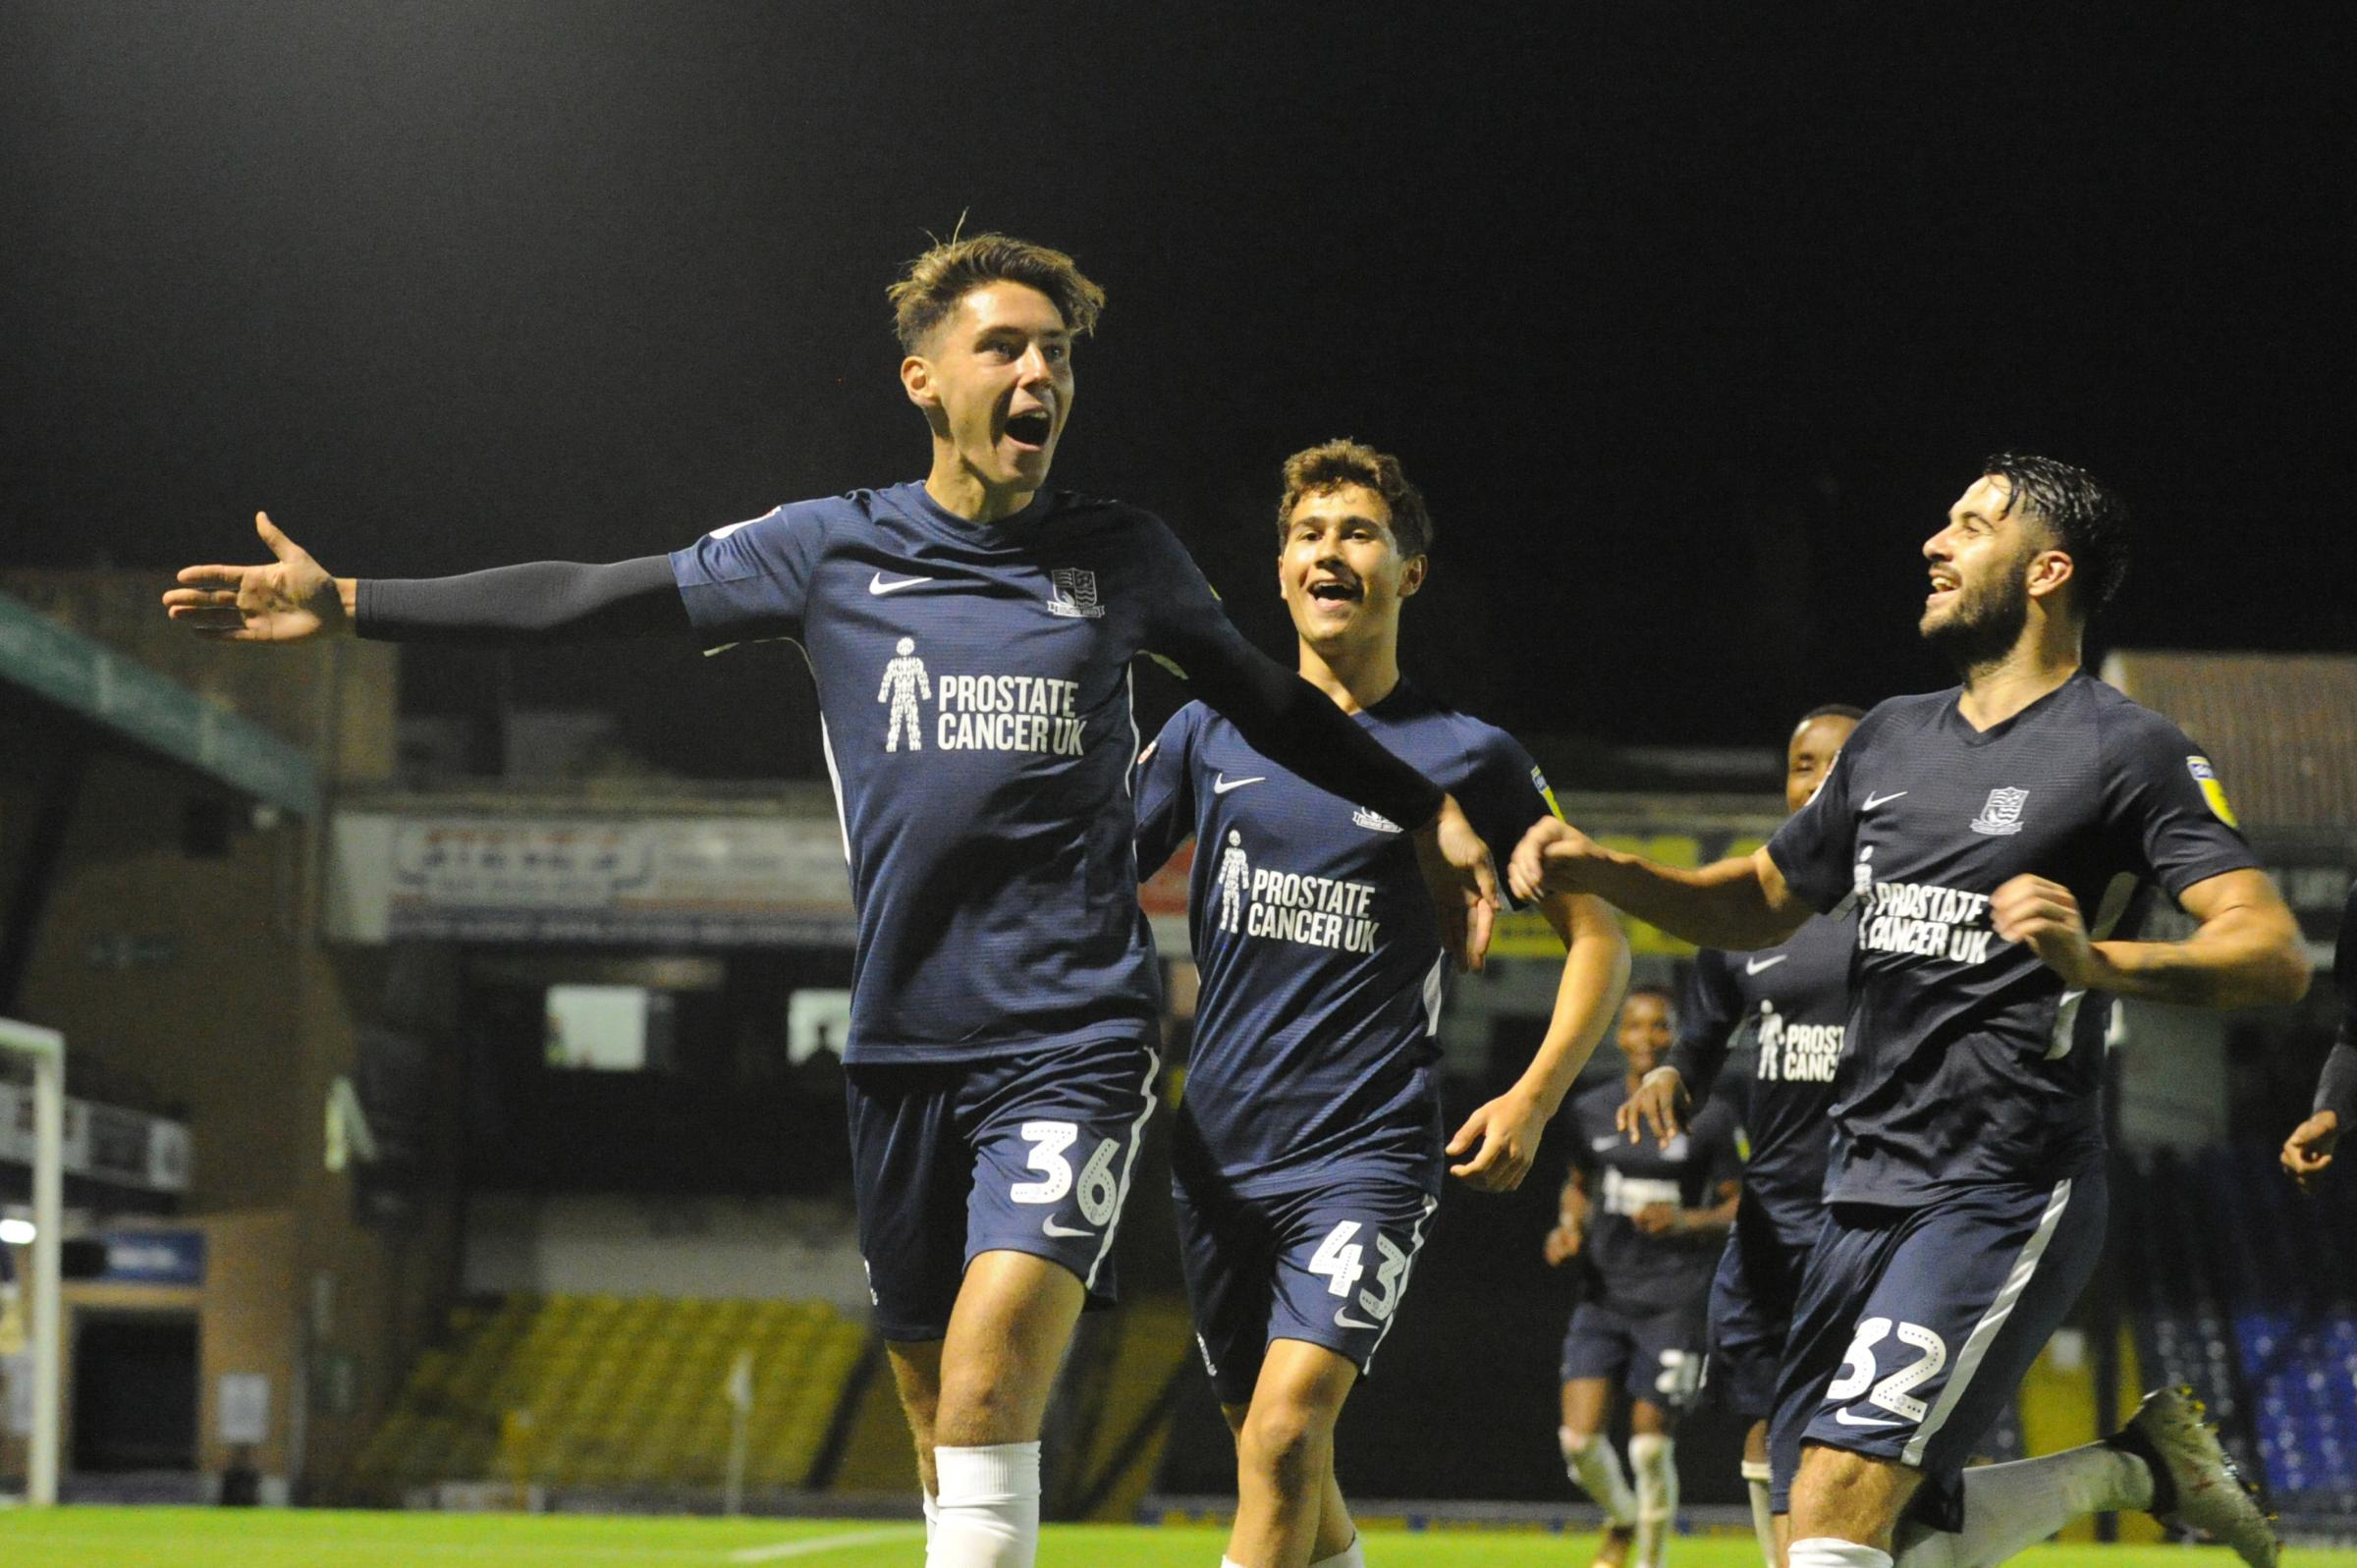 Aiming for more highs - Southend United youngster Isaac Hutchinson